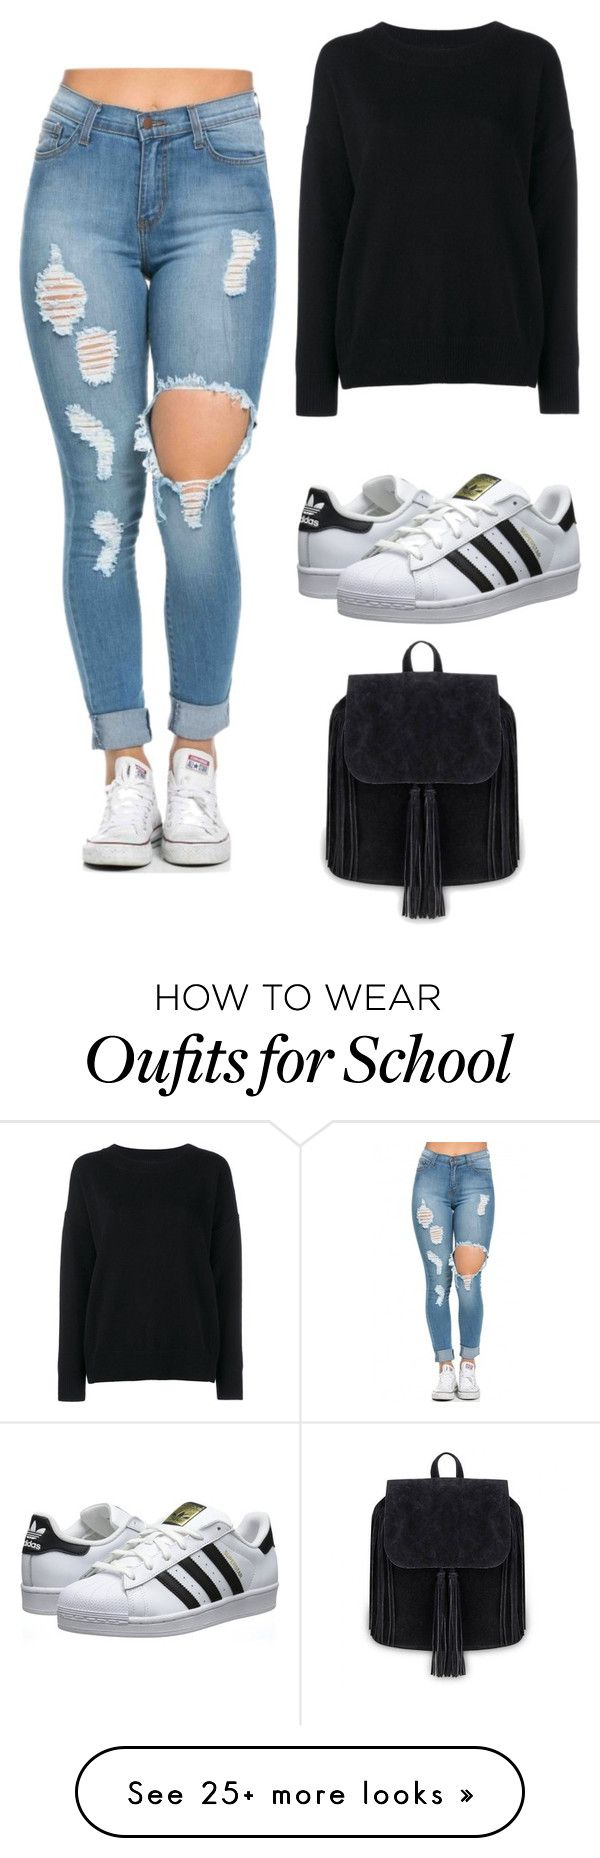 """Back To School Outfit"" by beatrizcostaa19 on Polyvore featuring Frame Denim, adidas Originals, women's clothing, women, female, woman, misses, juniors and BackToSchool"